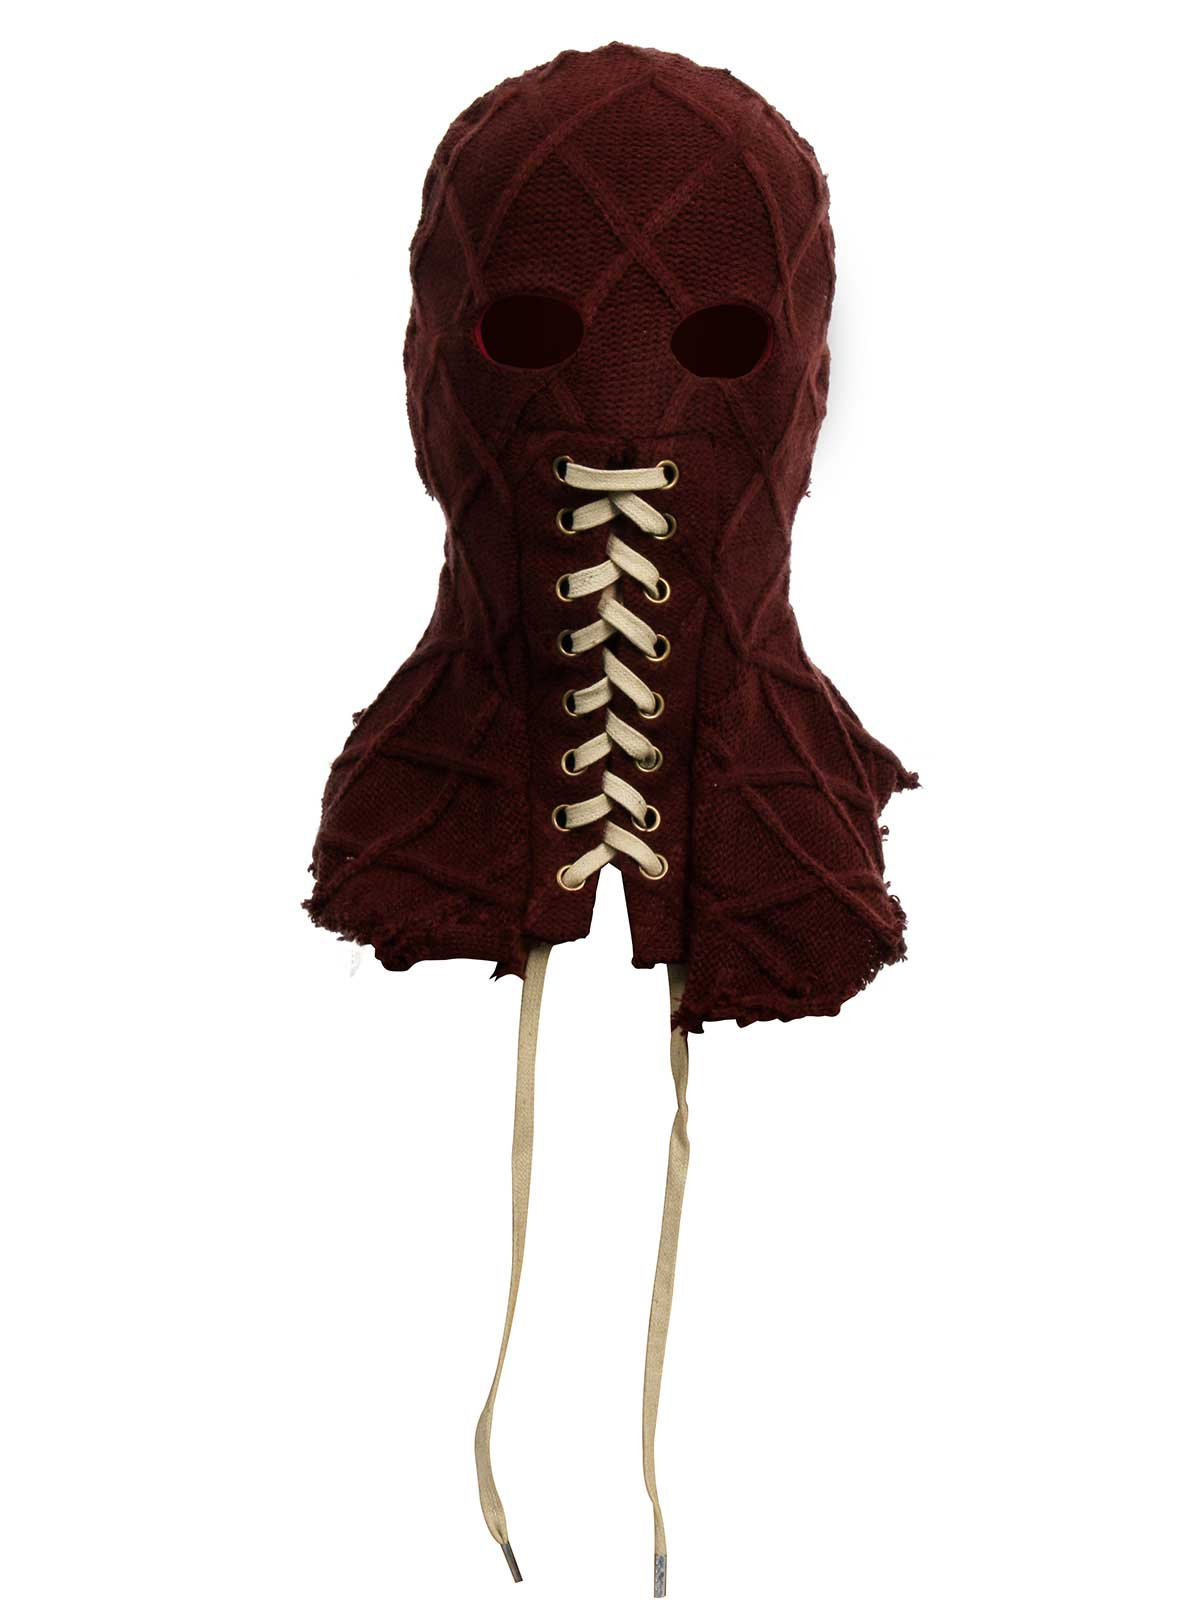 BrightBurn Red Hood Cosplay Scary Horror Mask Halloween Costumes Props New